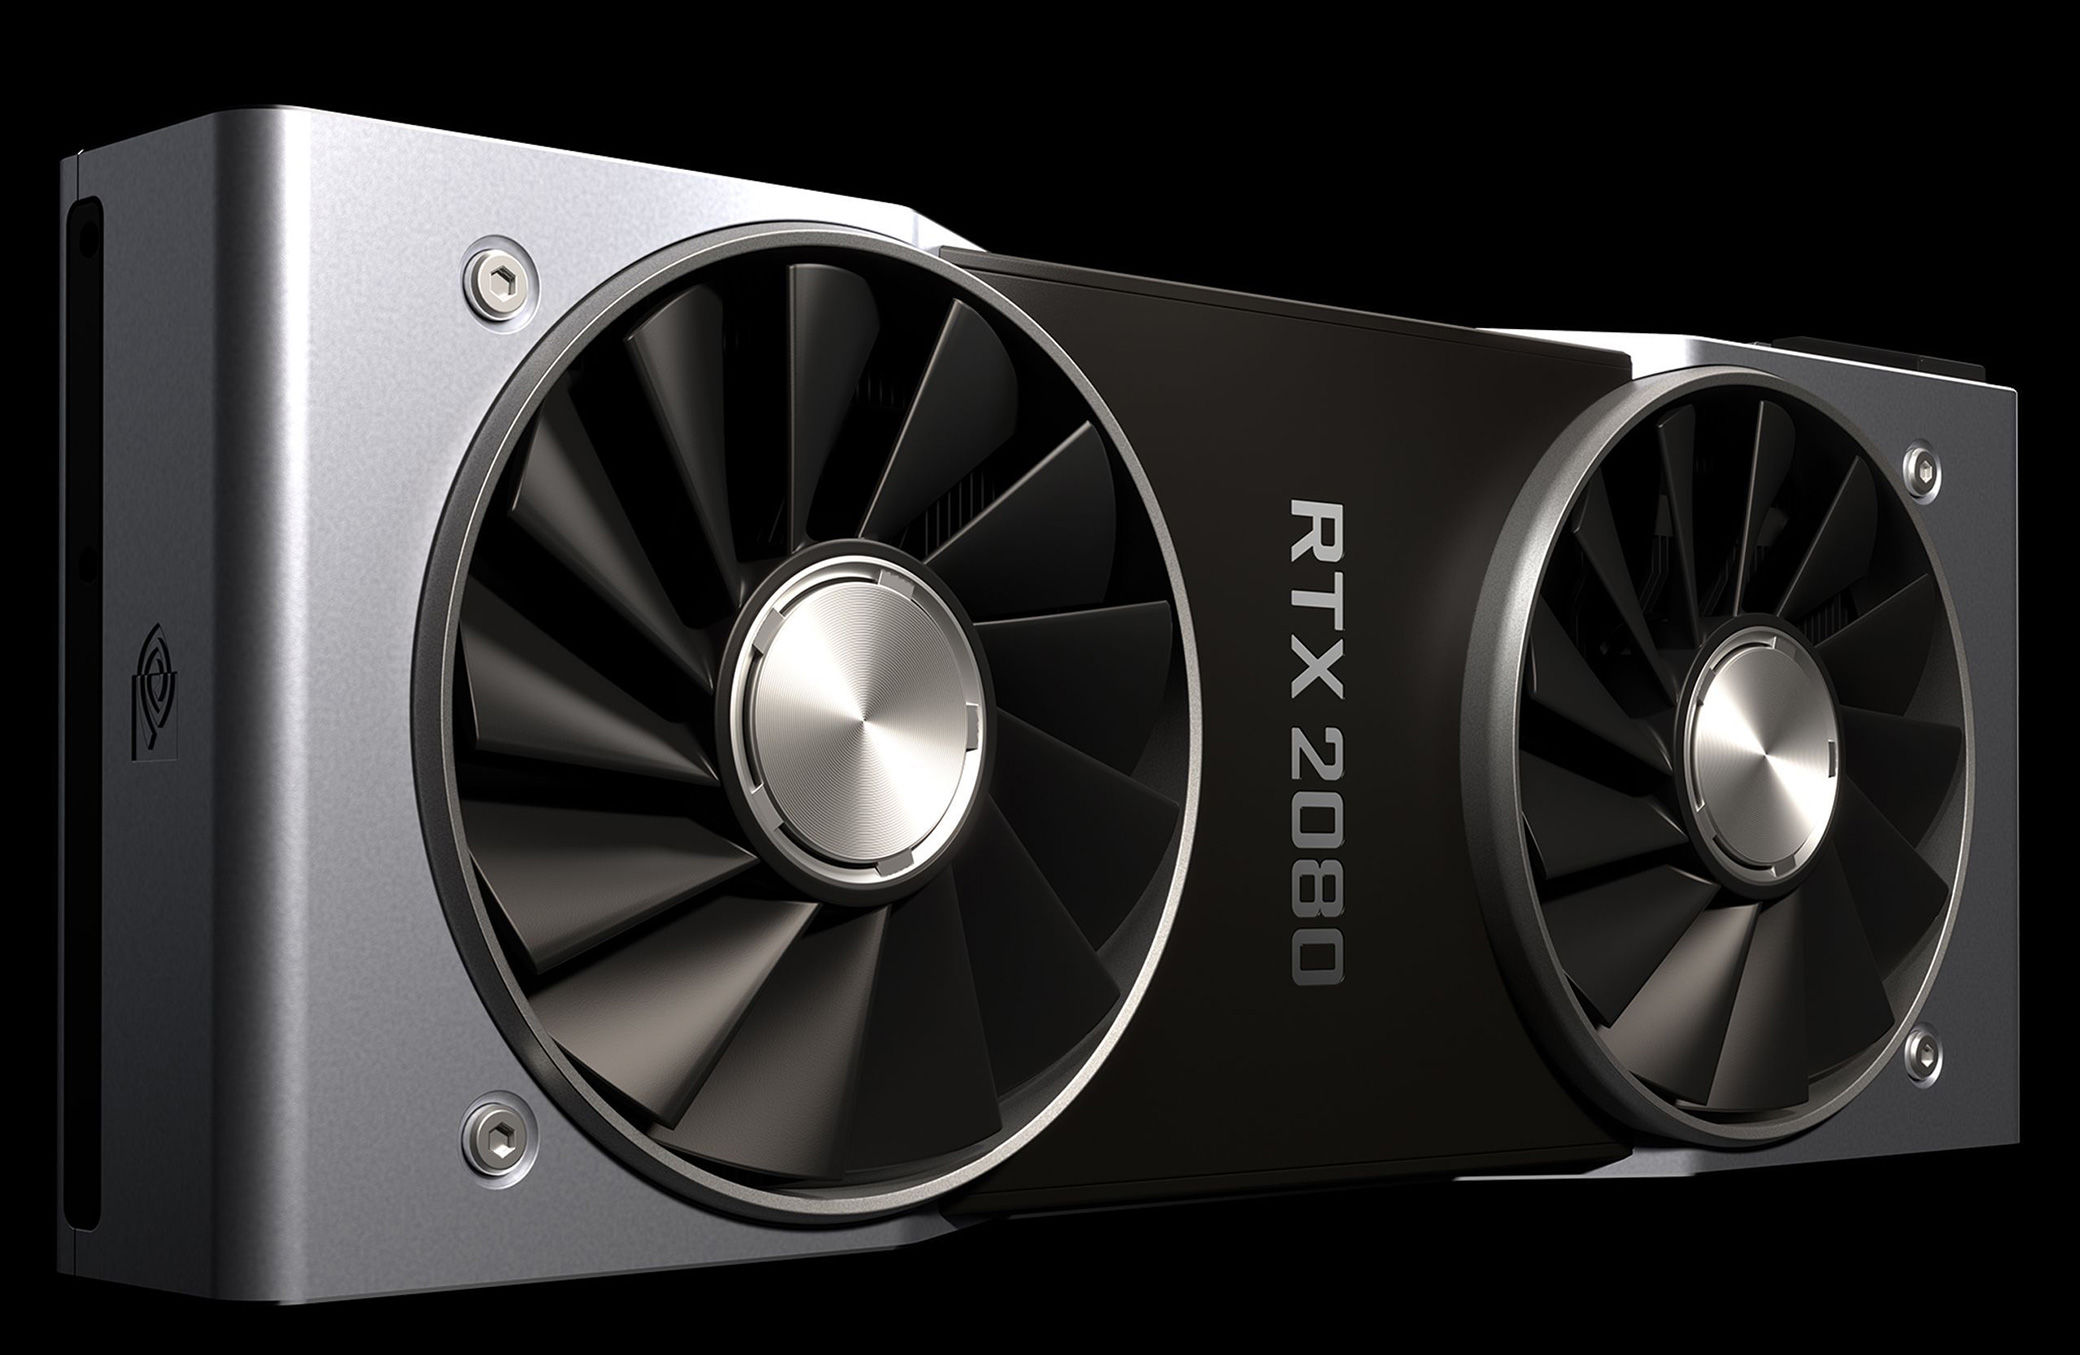 Nvidia's GeForce RTX graphics cards are loaded with boundary-pushing